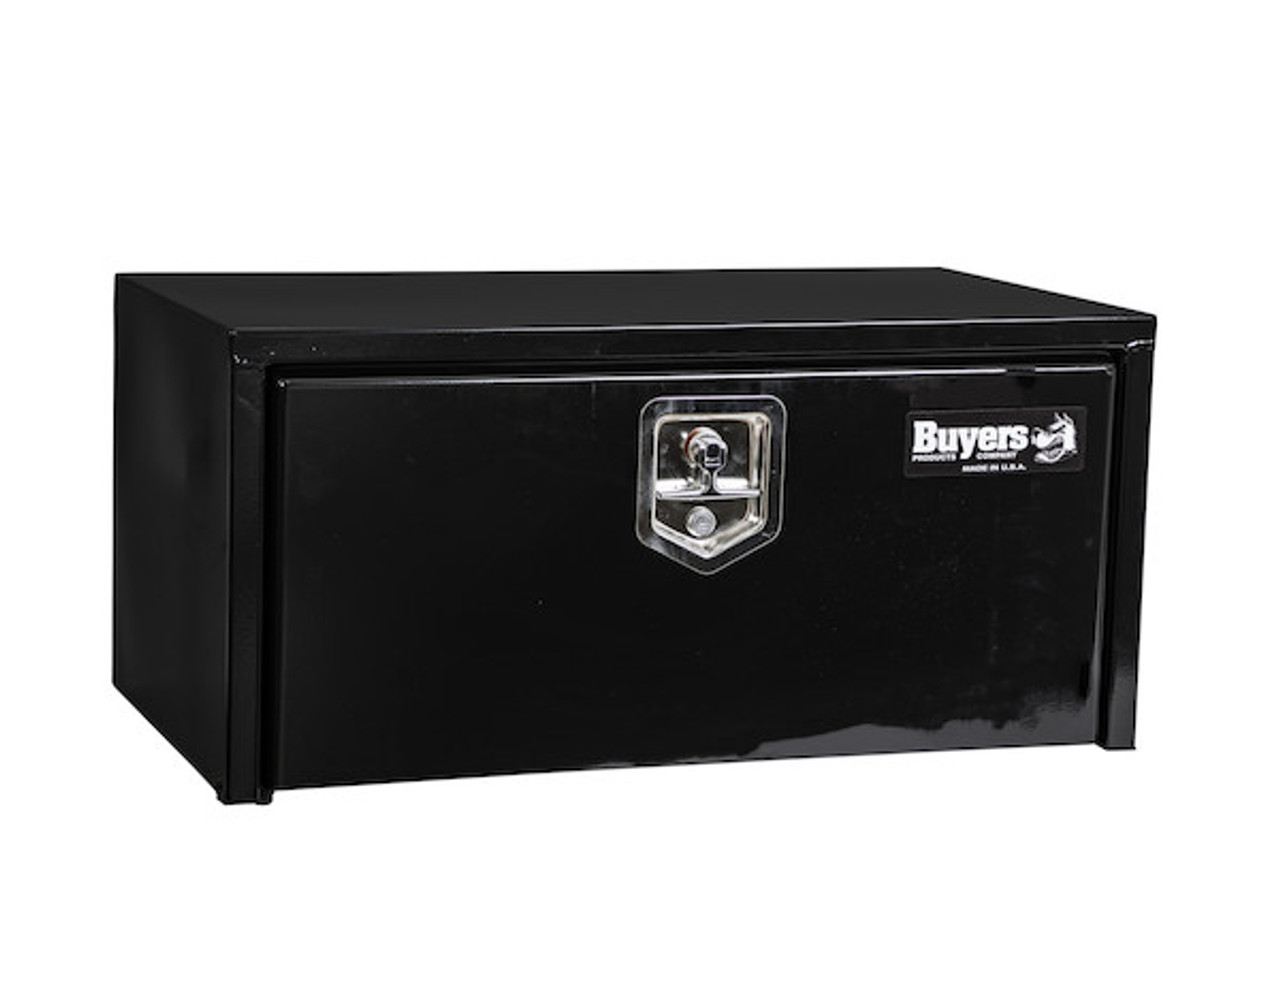 "1703304 BUYERS PRODUCTS BLACK STEEL UNDERBODY TRUCK TOOL BOX WITH BUILT-IN SHELF 14""HX16""DX30""W Picture # 7"